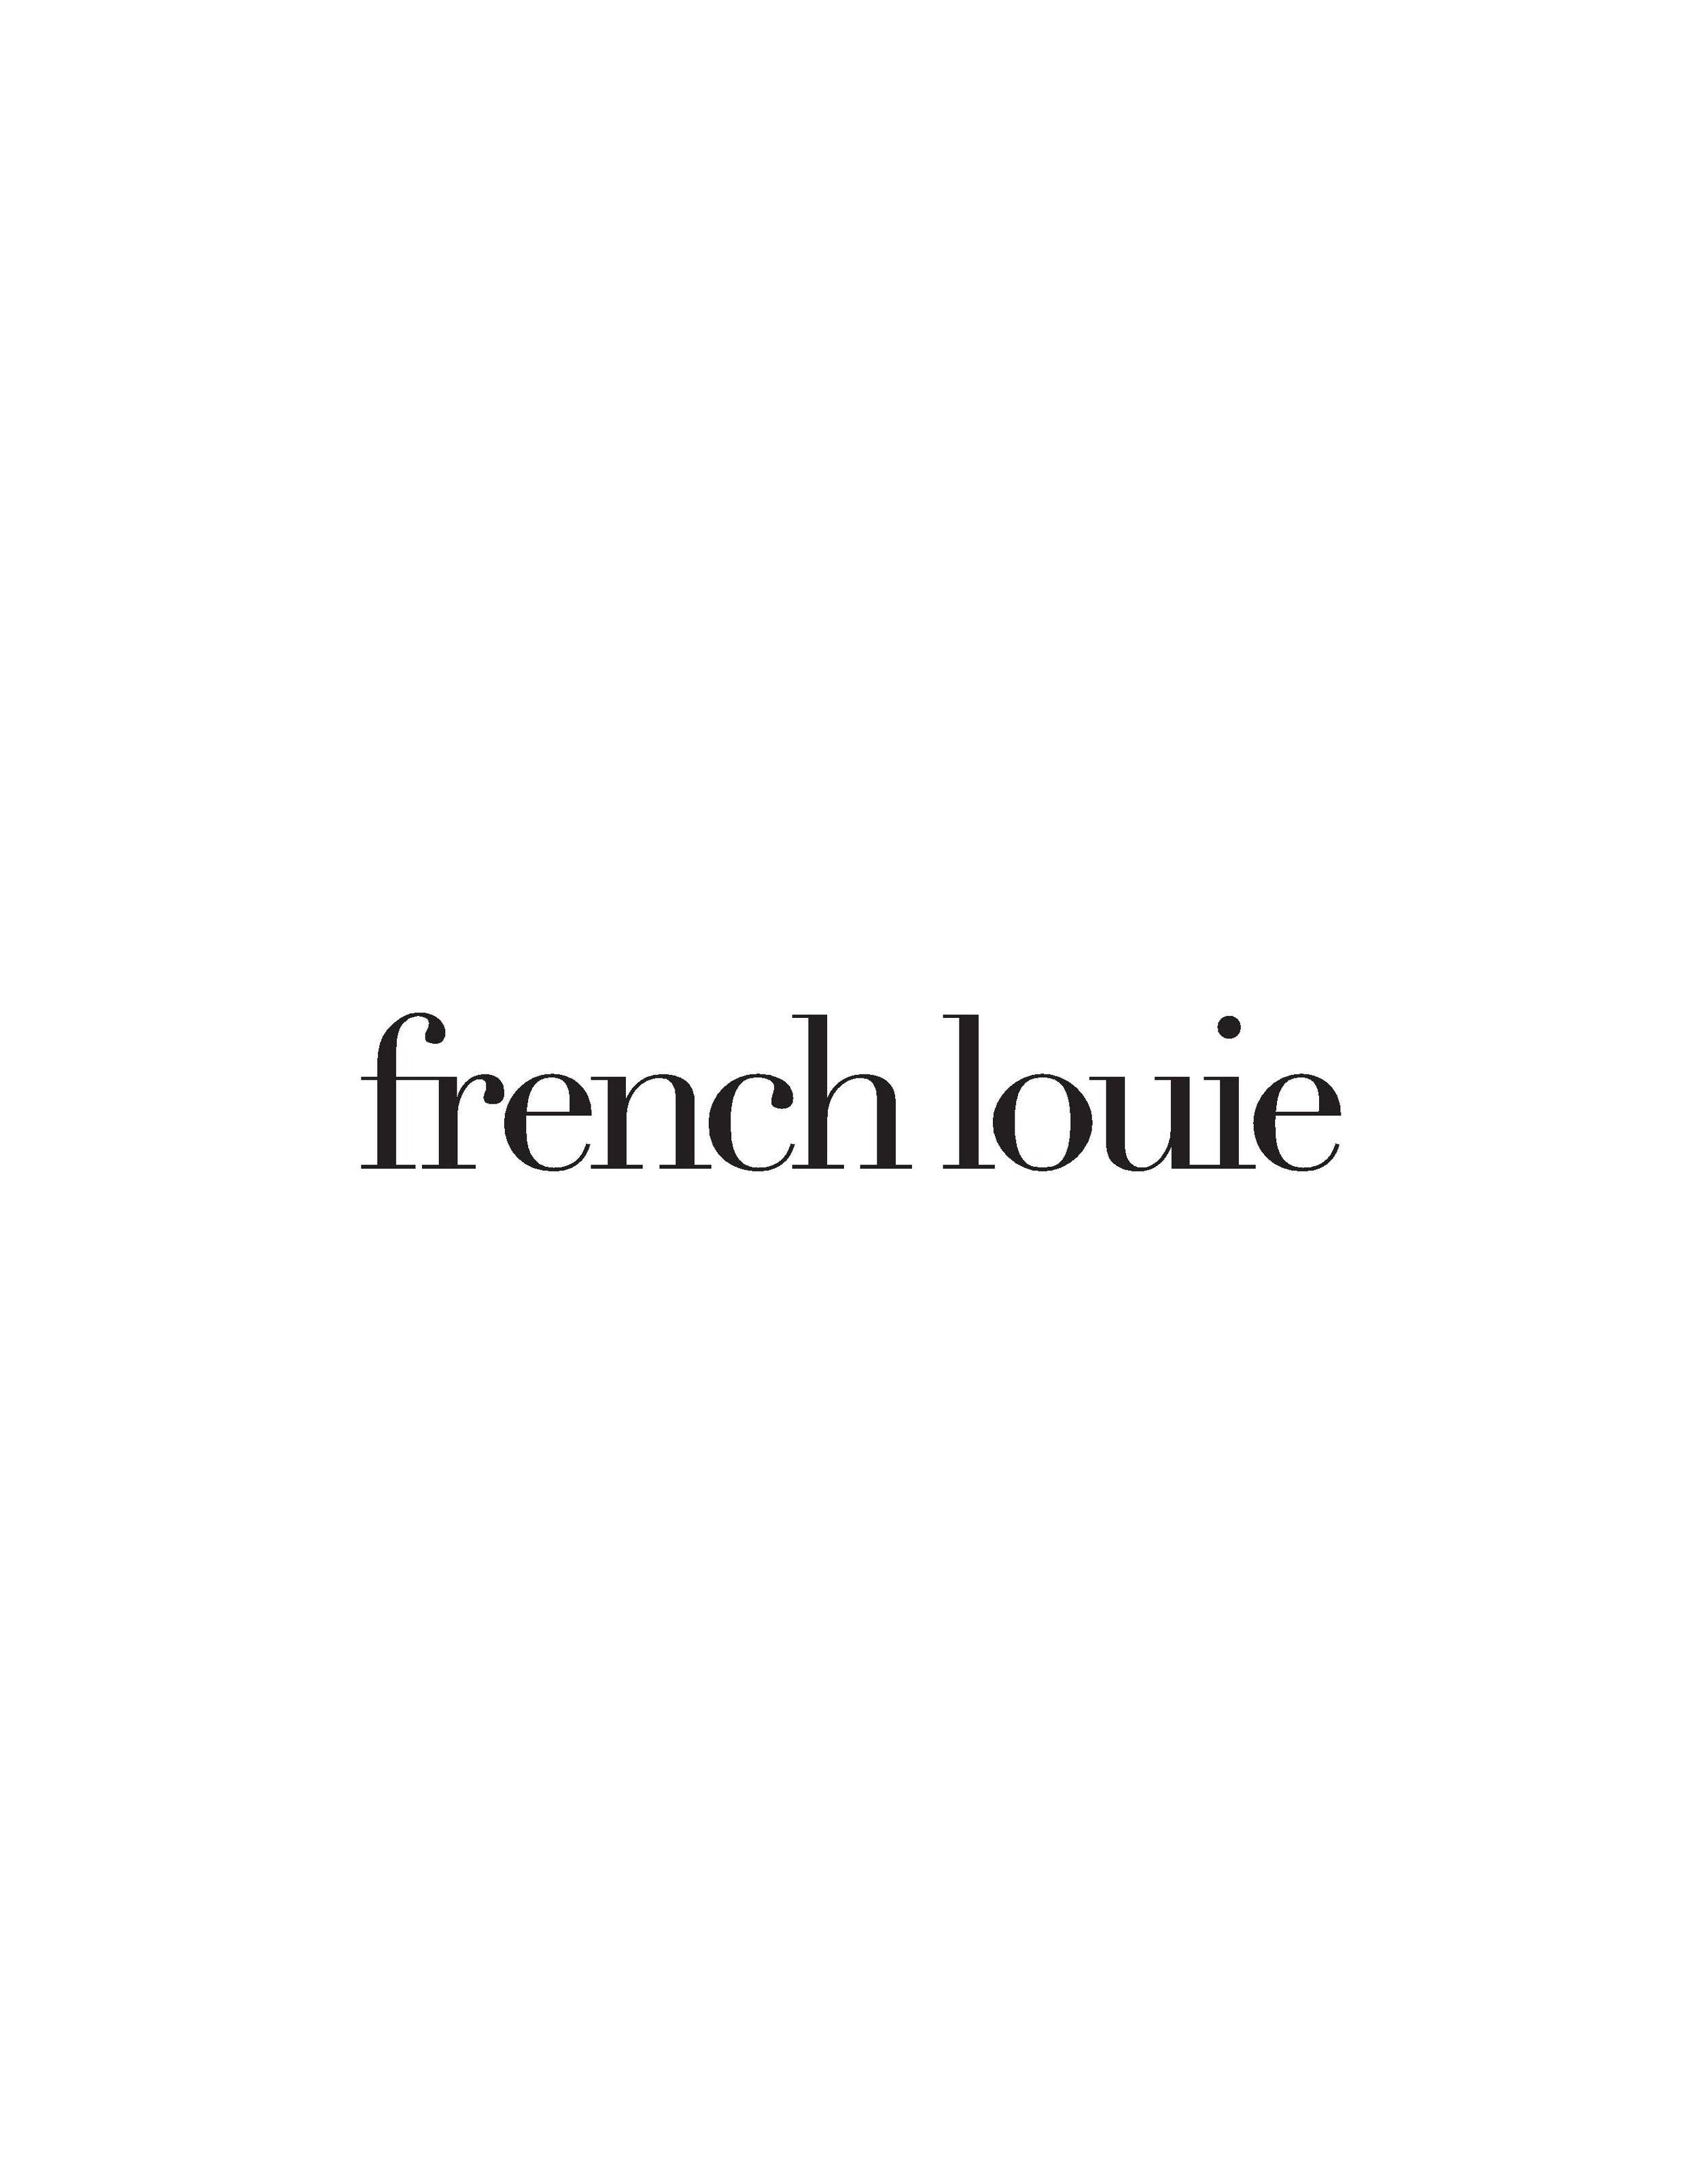 French Louie.jpg